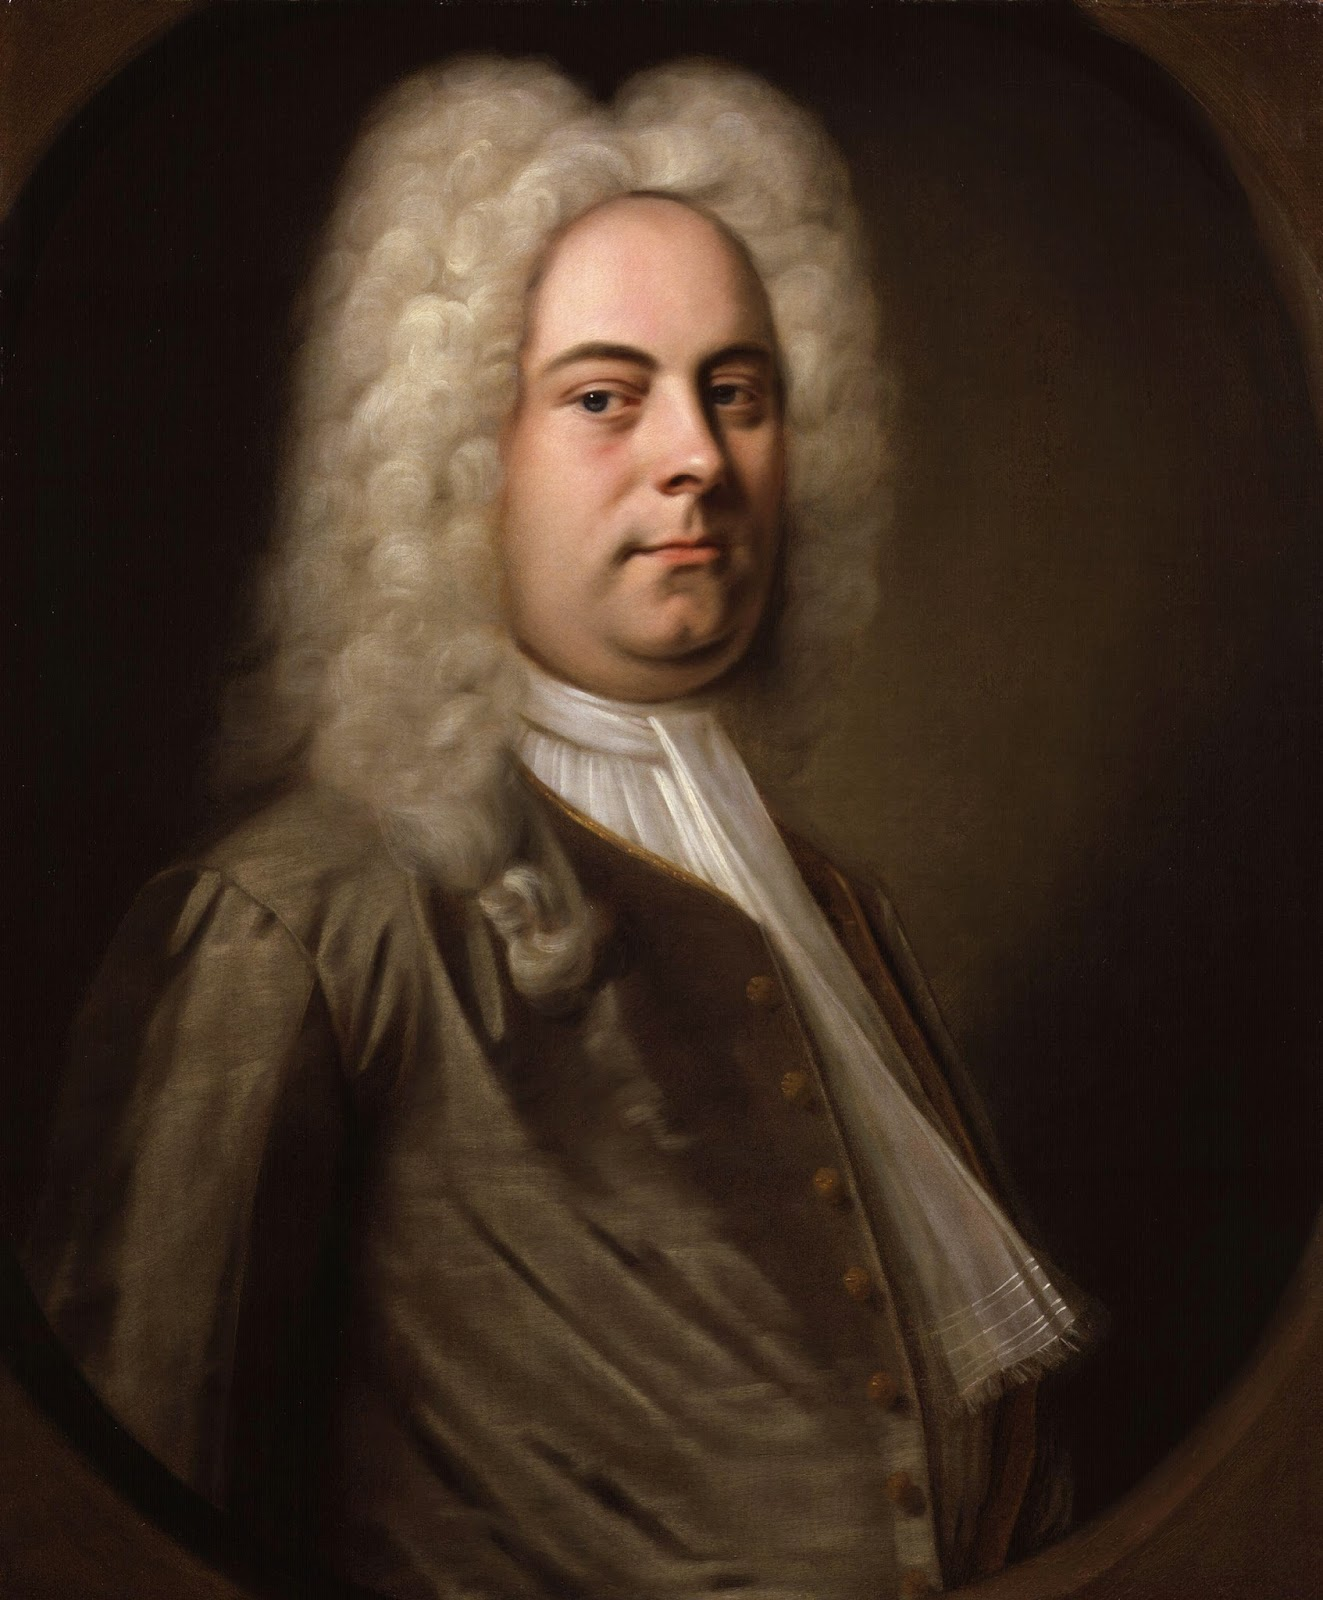 The 15 Greatest Classical Composers Of All Time - George Frideric Handel (1685-1759)